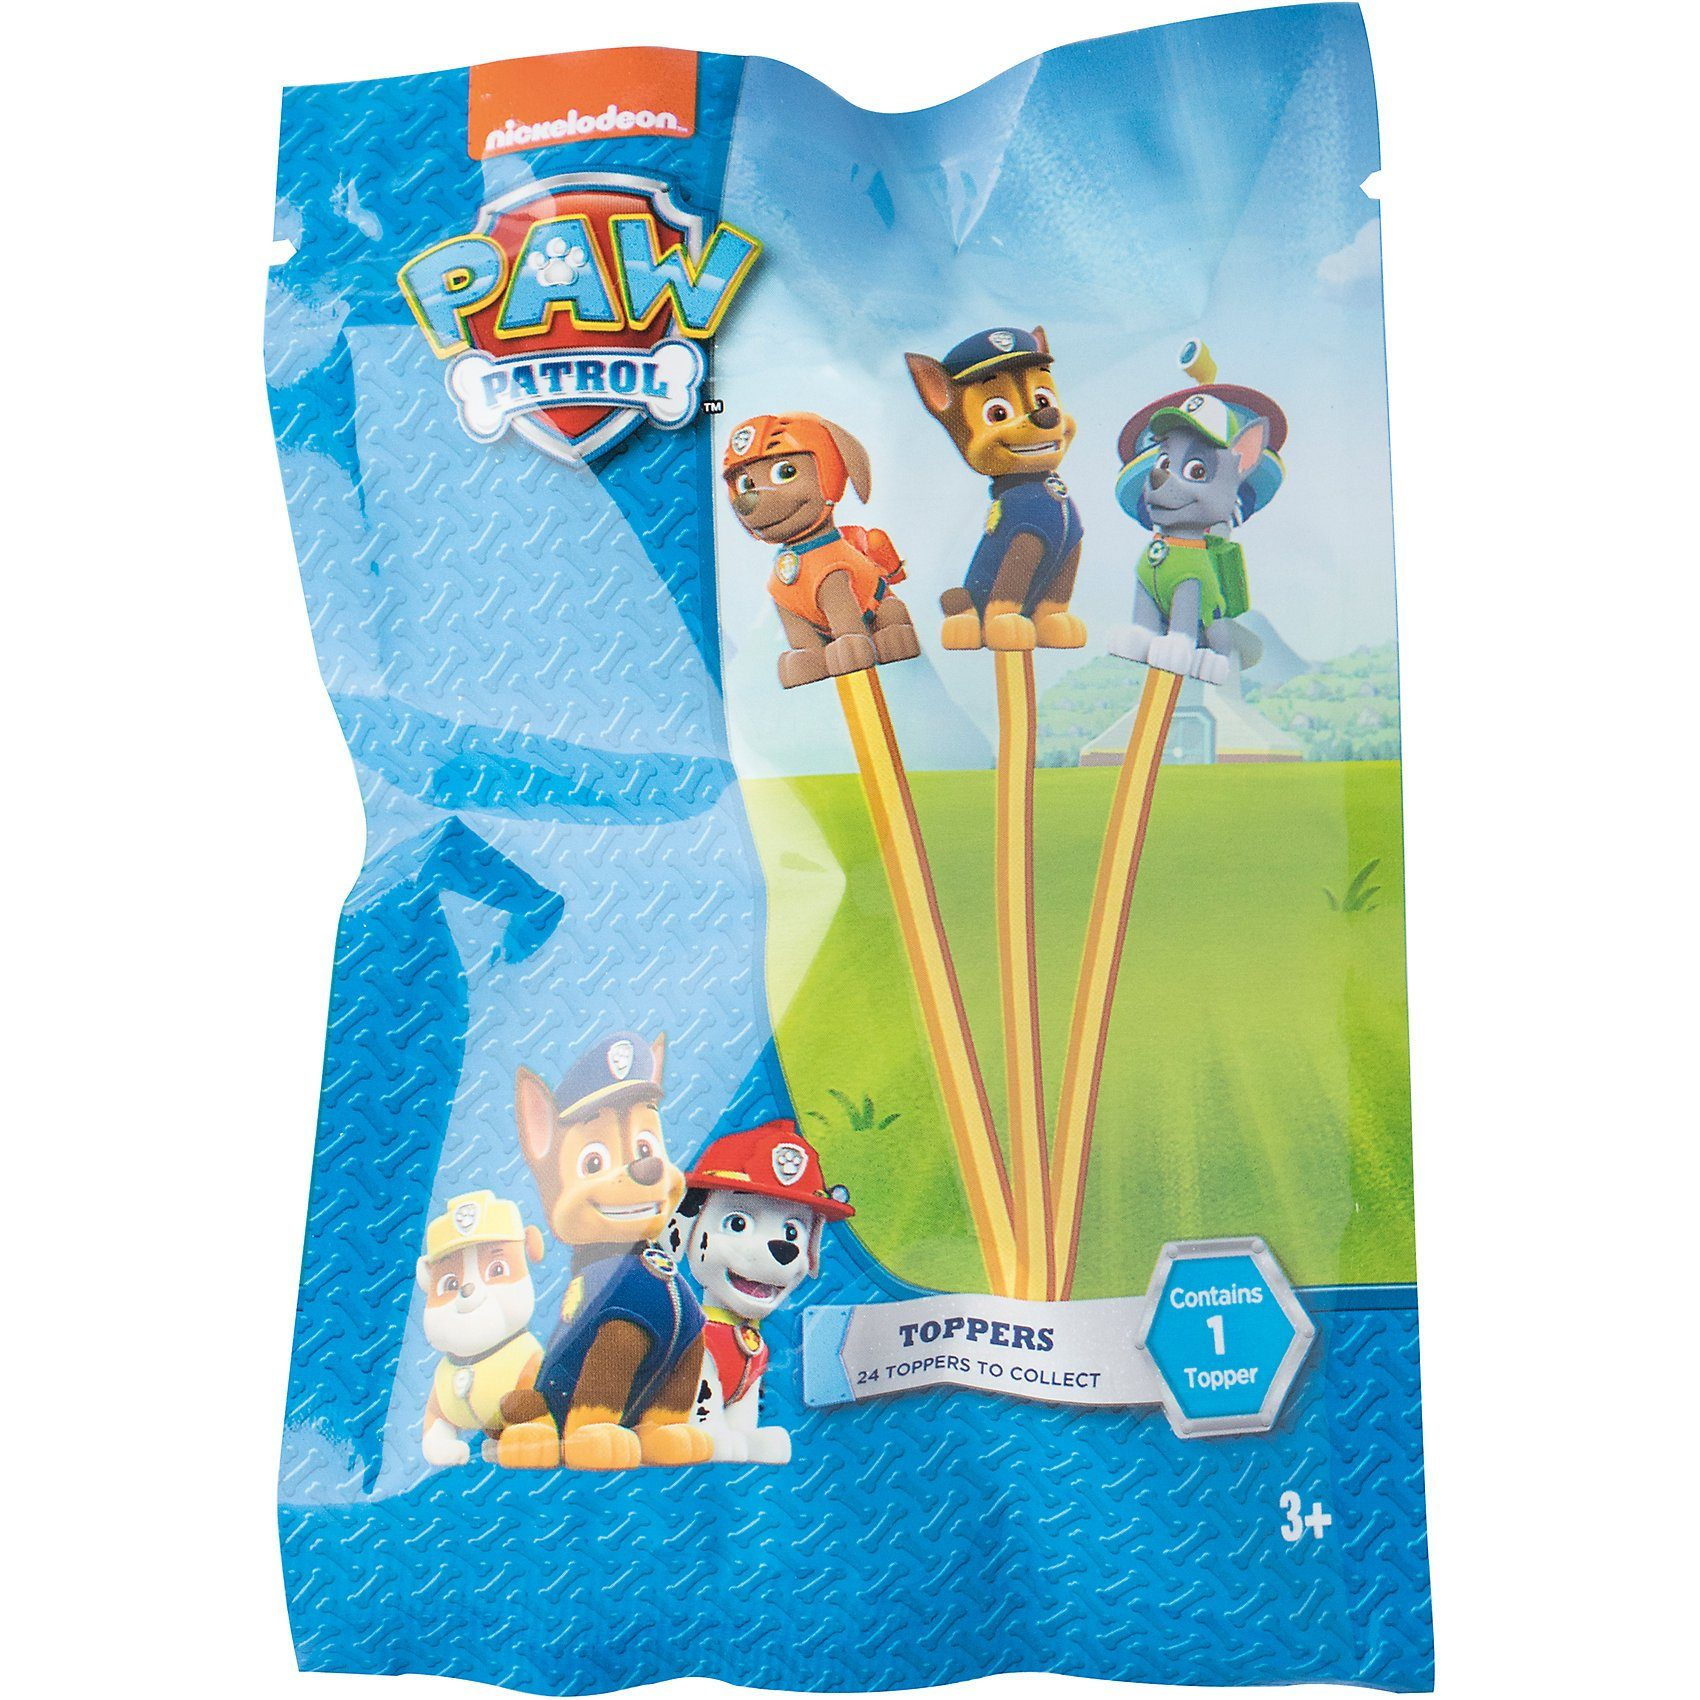 Joy Toy Paw Patrol Pencil Topper mit 3d-Figur im Blindpack